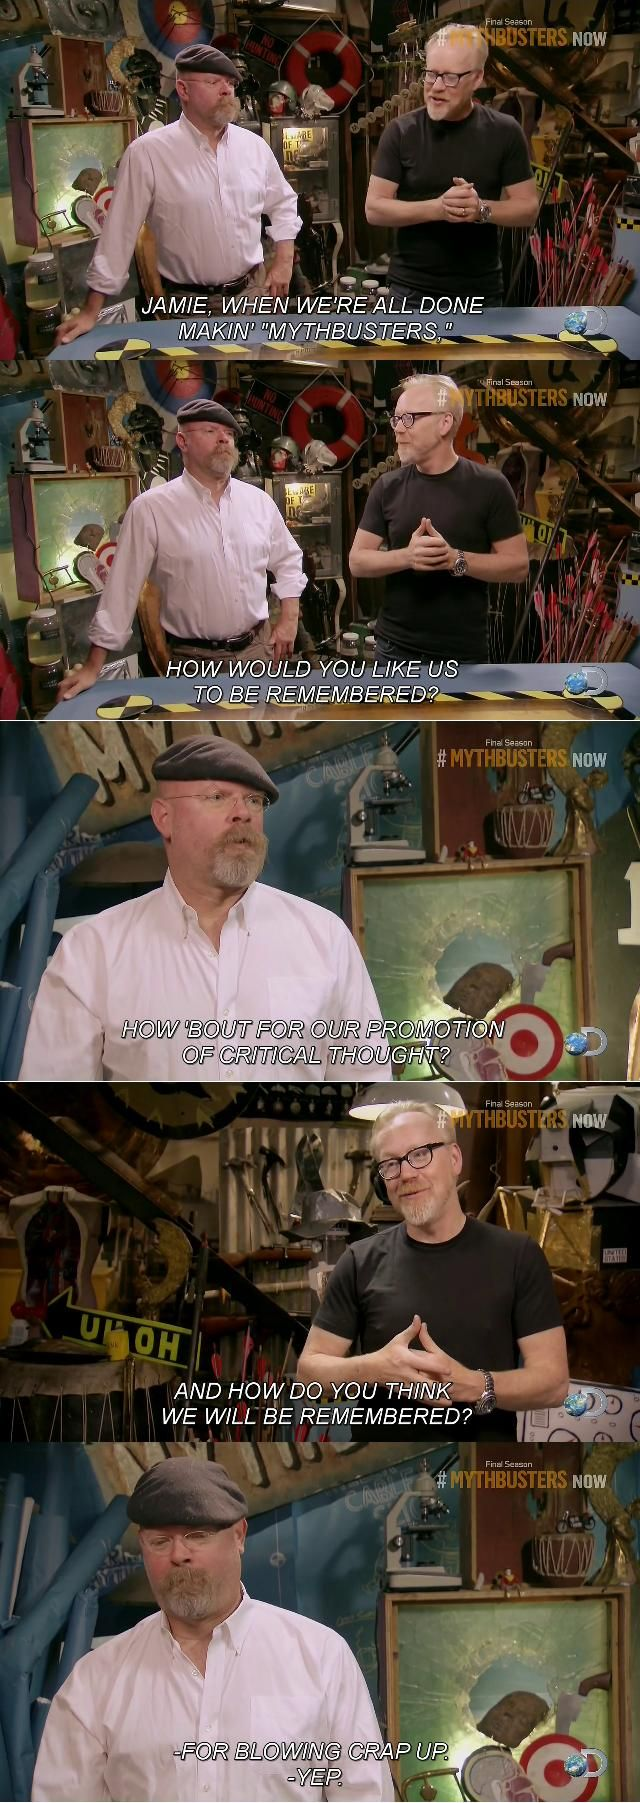 Super Whisper Collection: Mythbusters: How do you think we will be remembere...